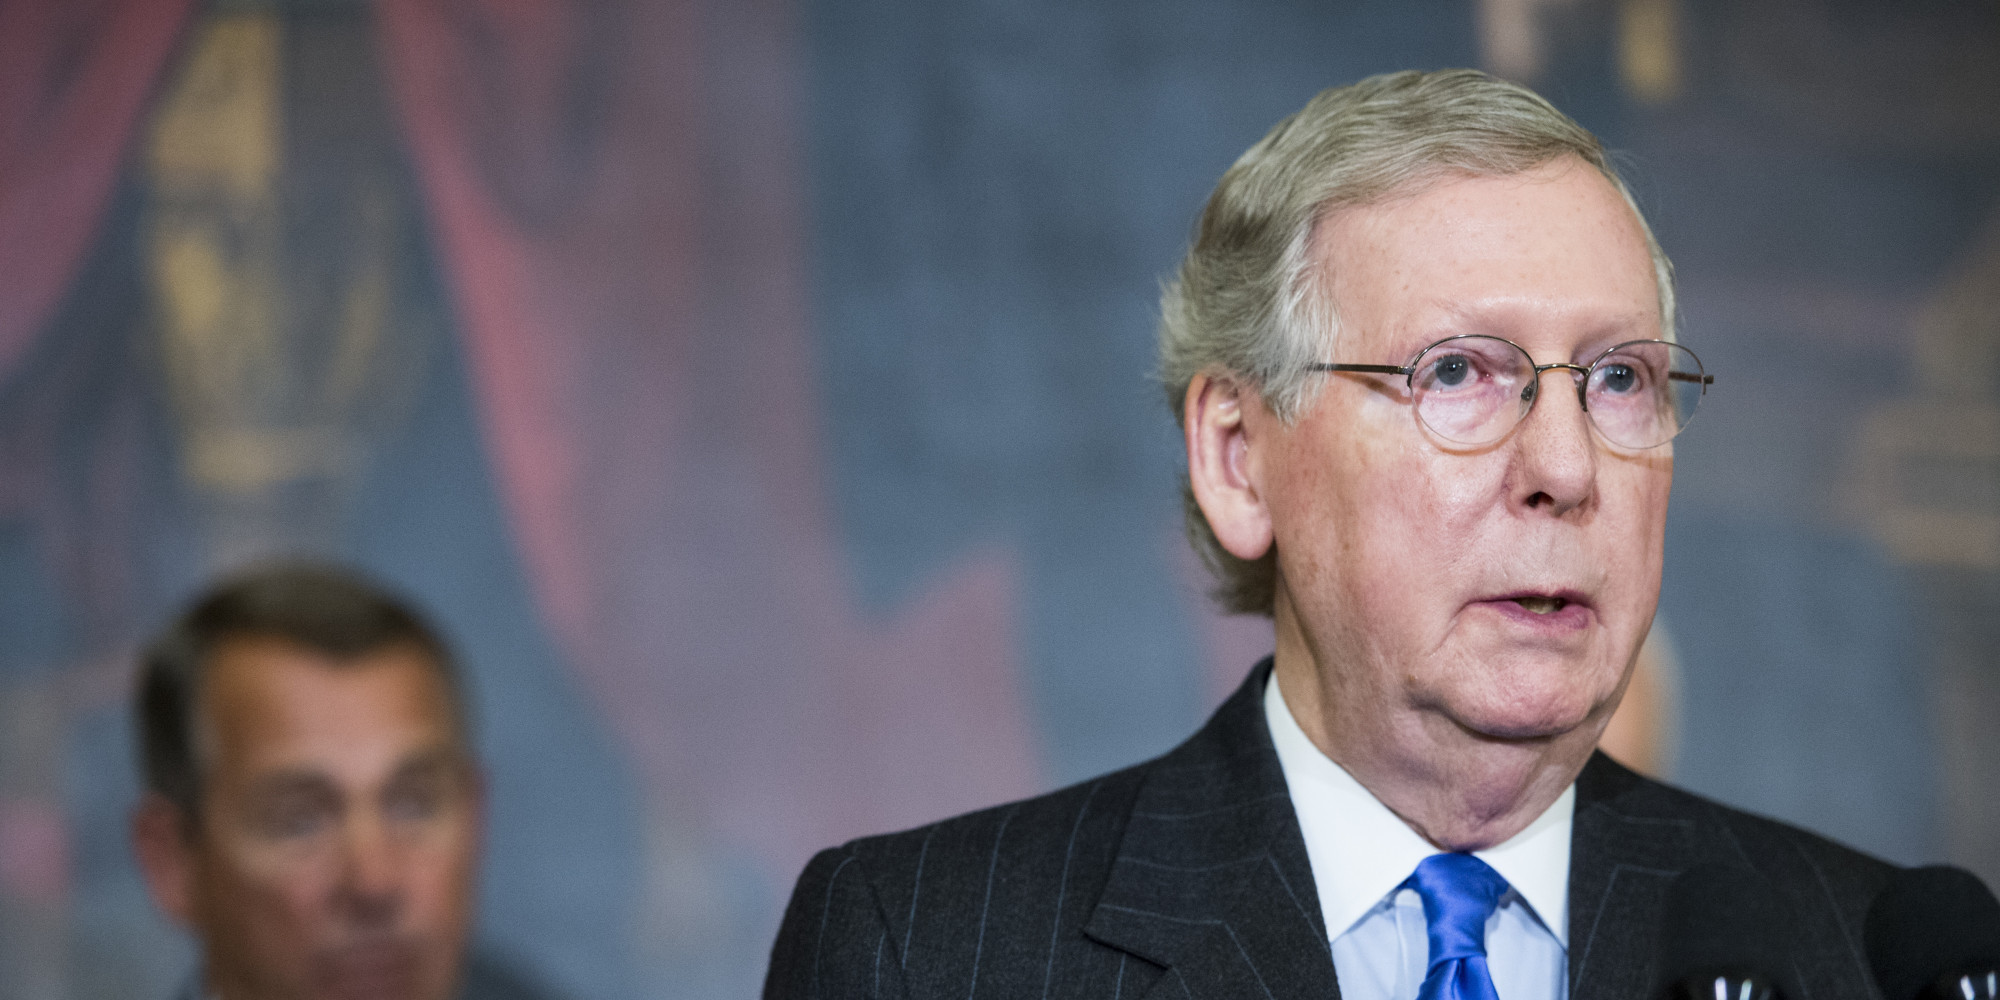 mitch mcconnell - photo #36